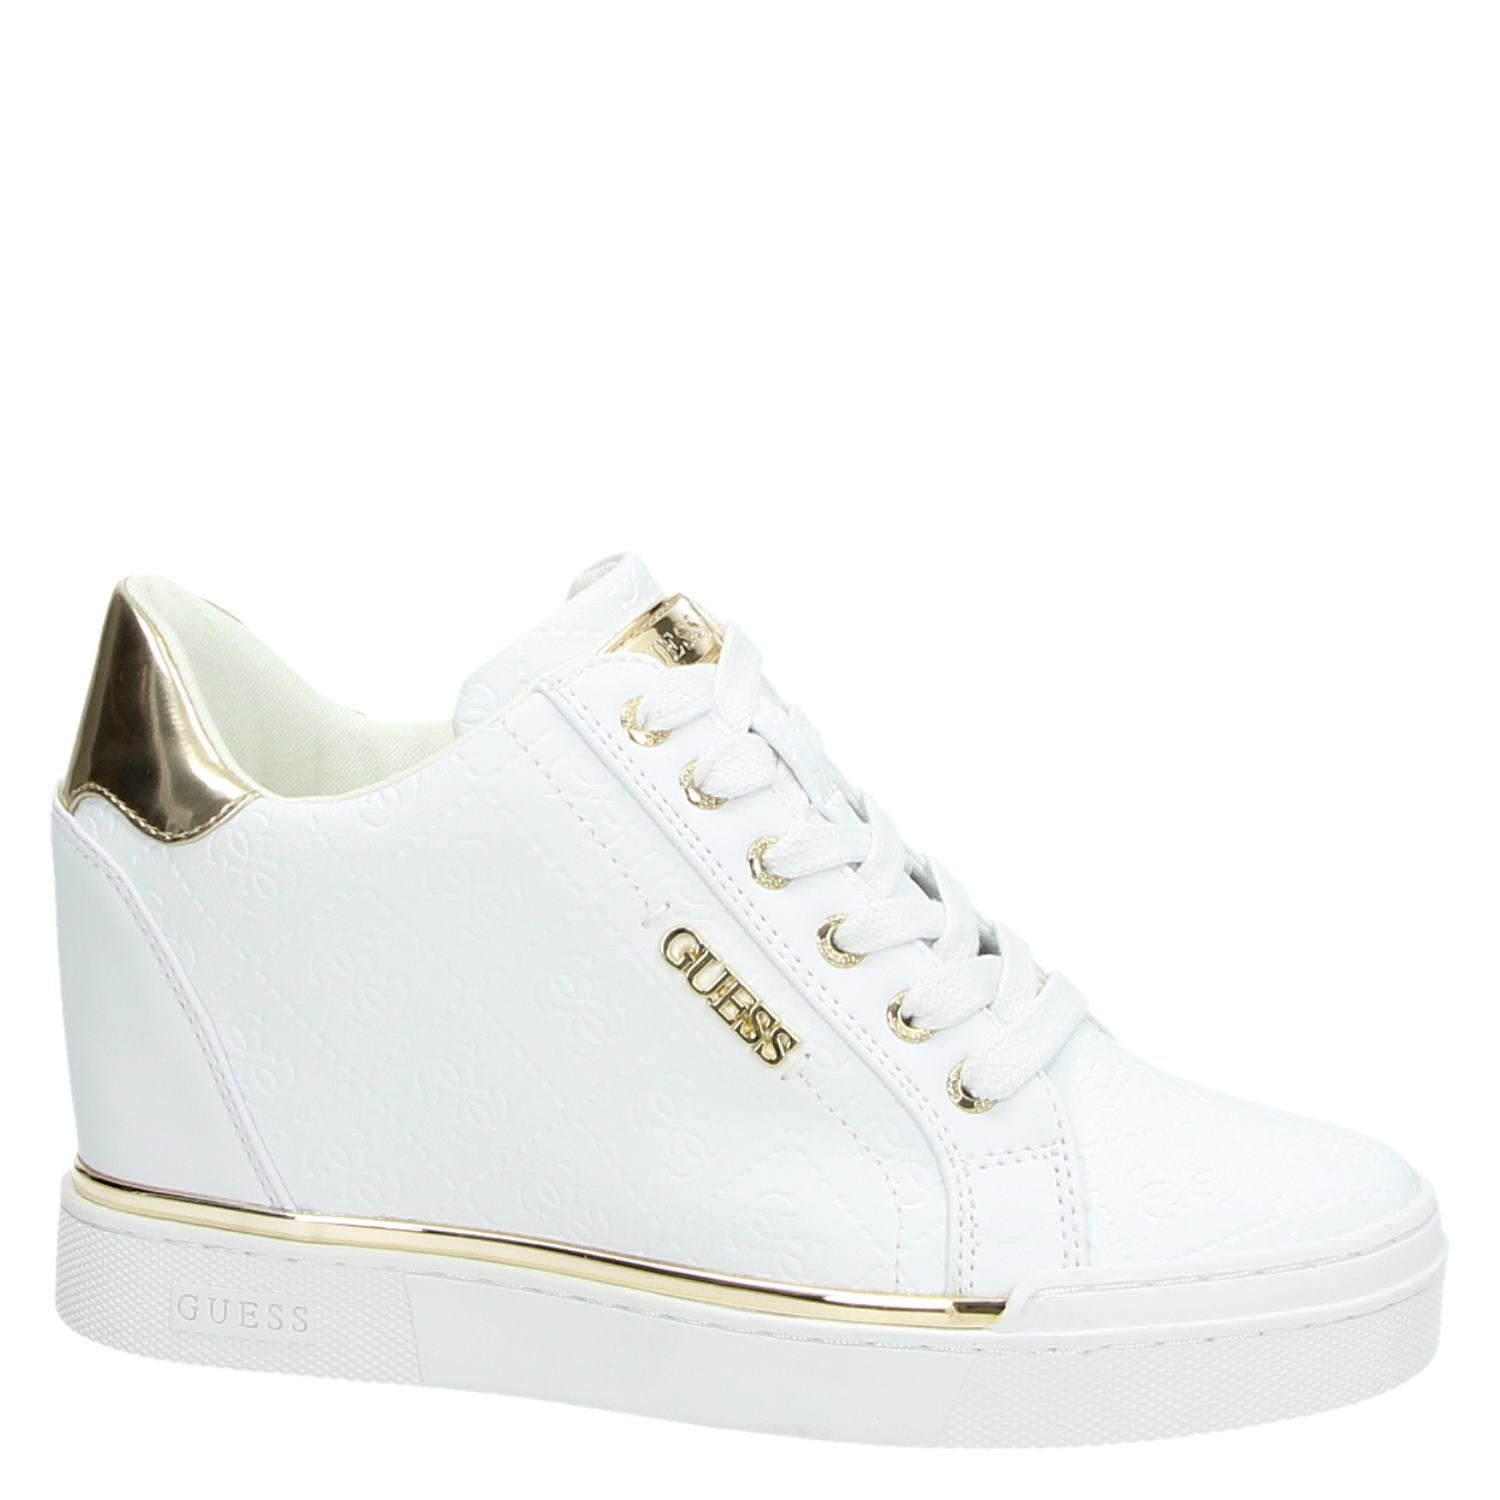 a33a02801a5 Guess Flowurs dames hoge sneakers wit